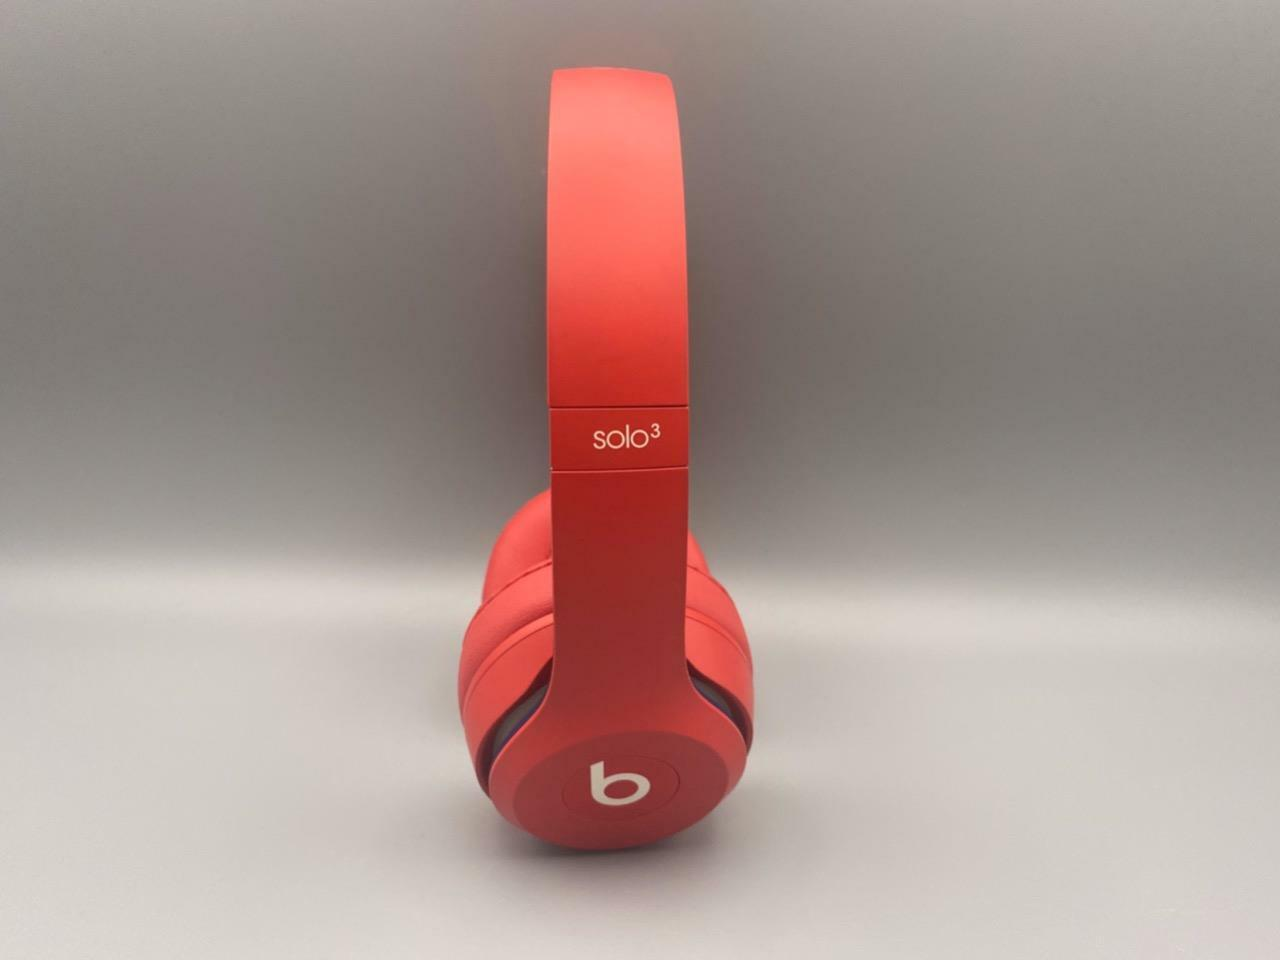 Beats By Dre Beats Solo 3 Wireless On Ear Headphone Red Club B4 Does Not Apply For Sale Online